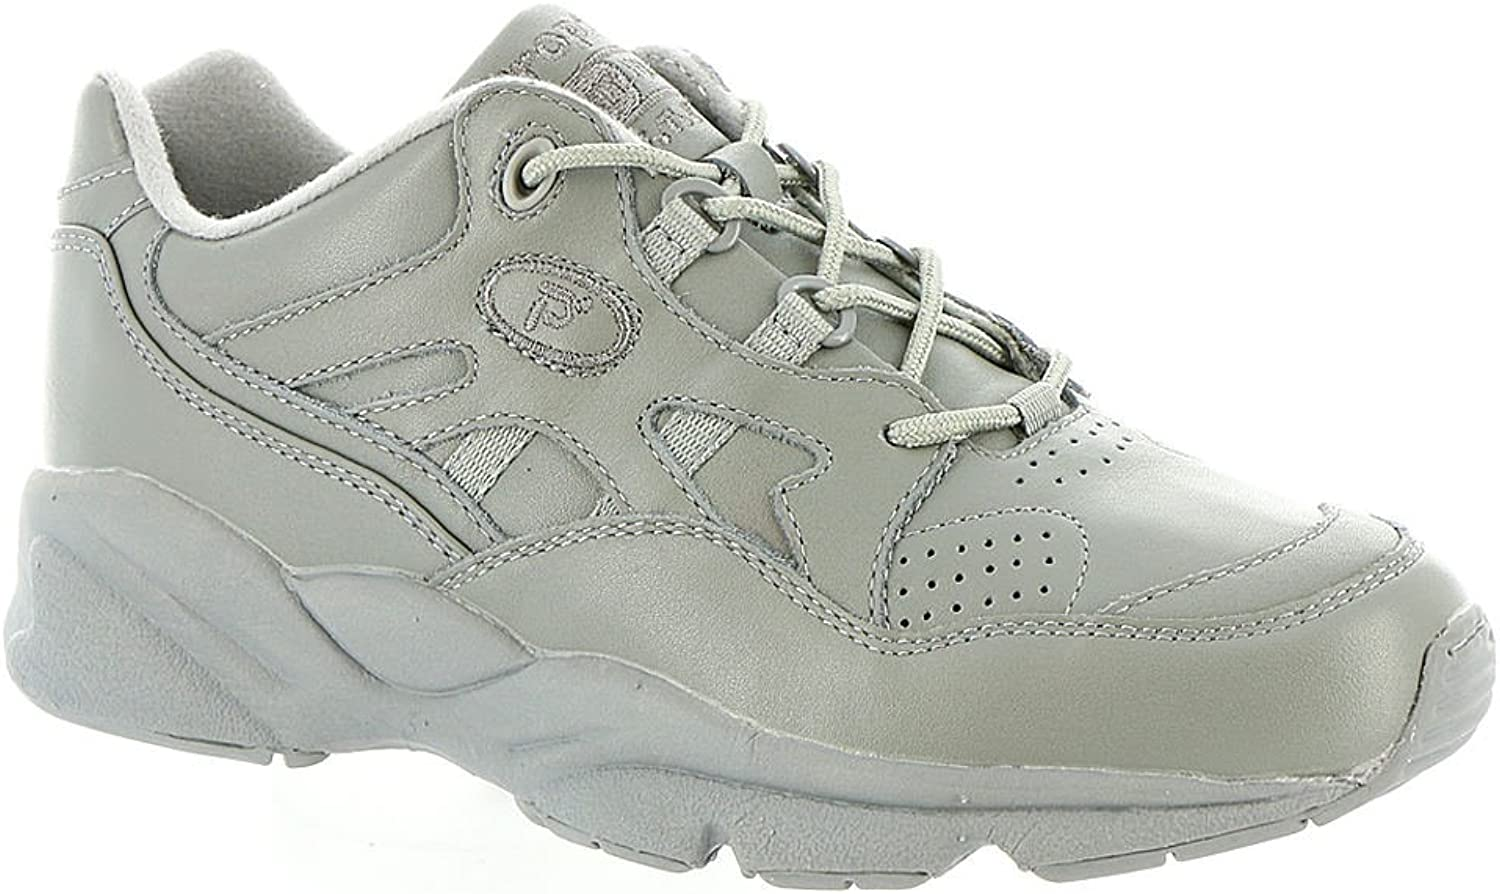 Propét Womens W2034 Suede Low Top Lace Up Walking, Grey Leather, Size 12.0